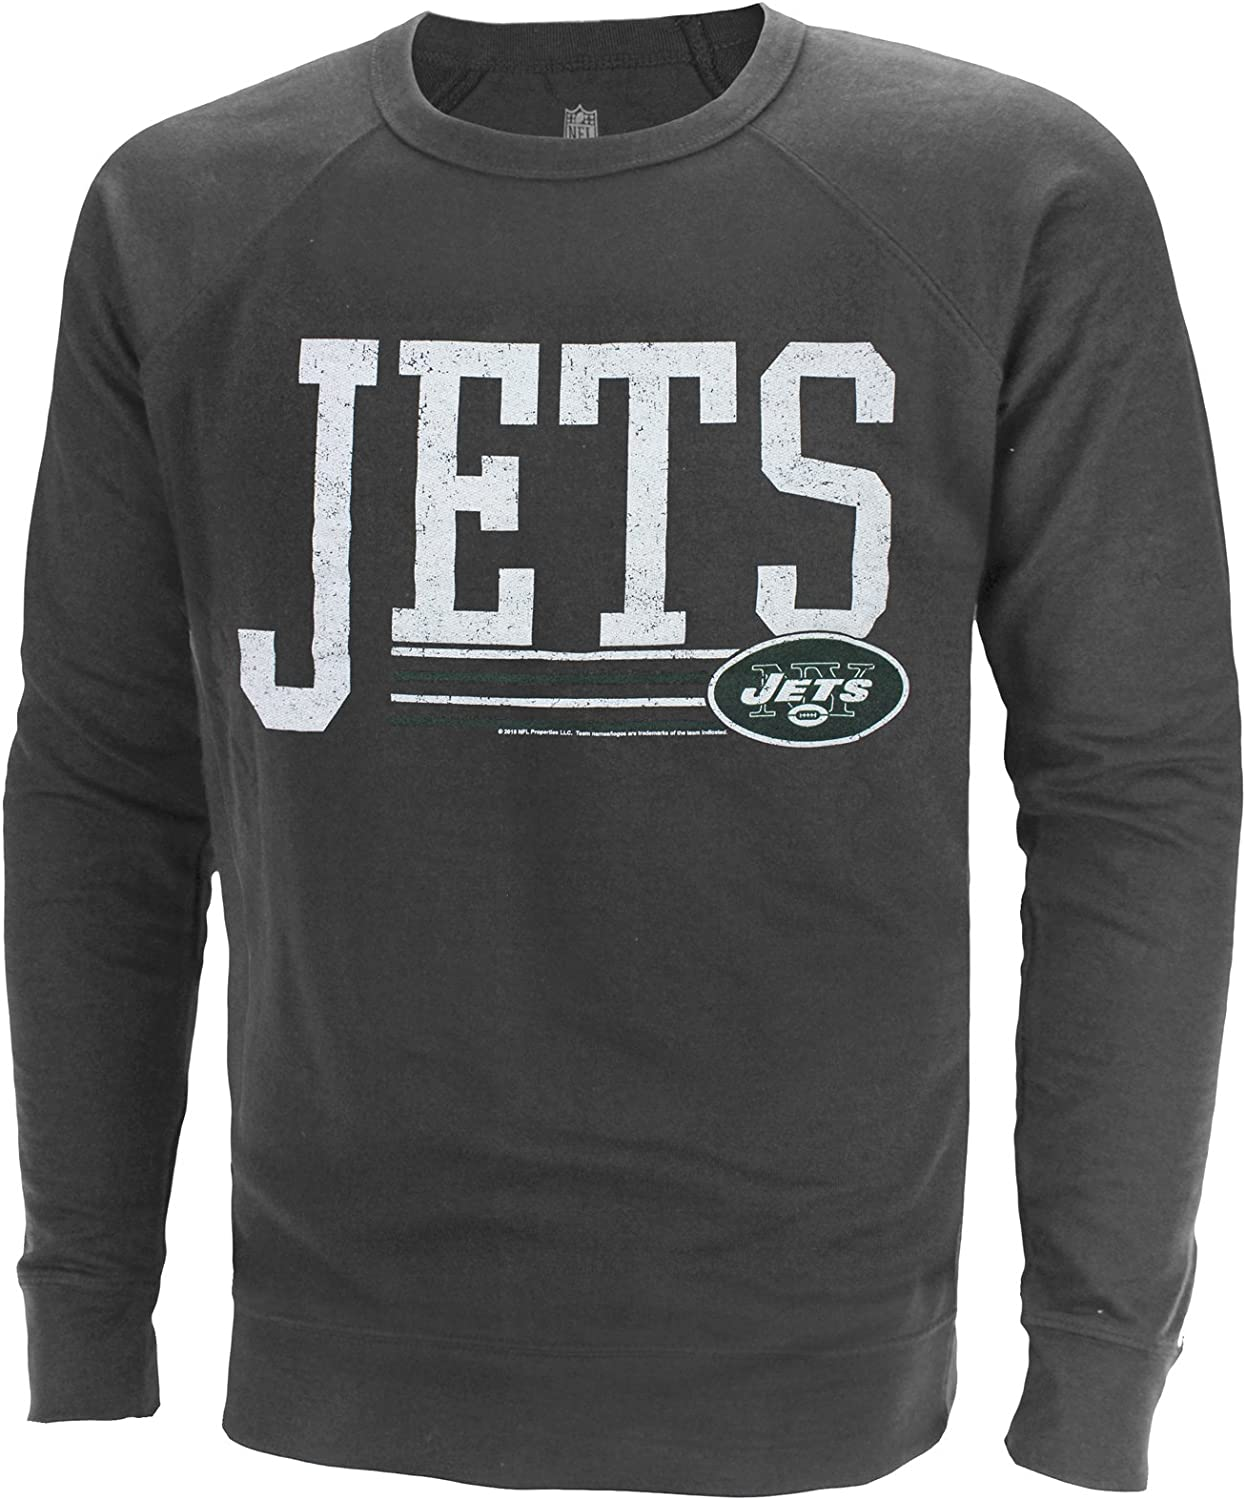 Junk Food NFL Men's Fundamentals French Terry Crew Sweater, Charcoal Heather, Team Choice